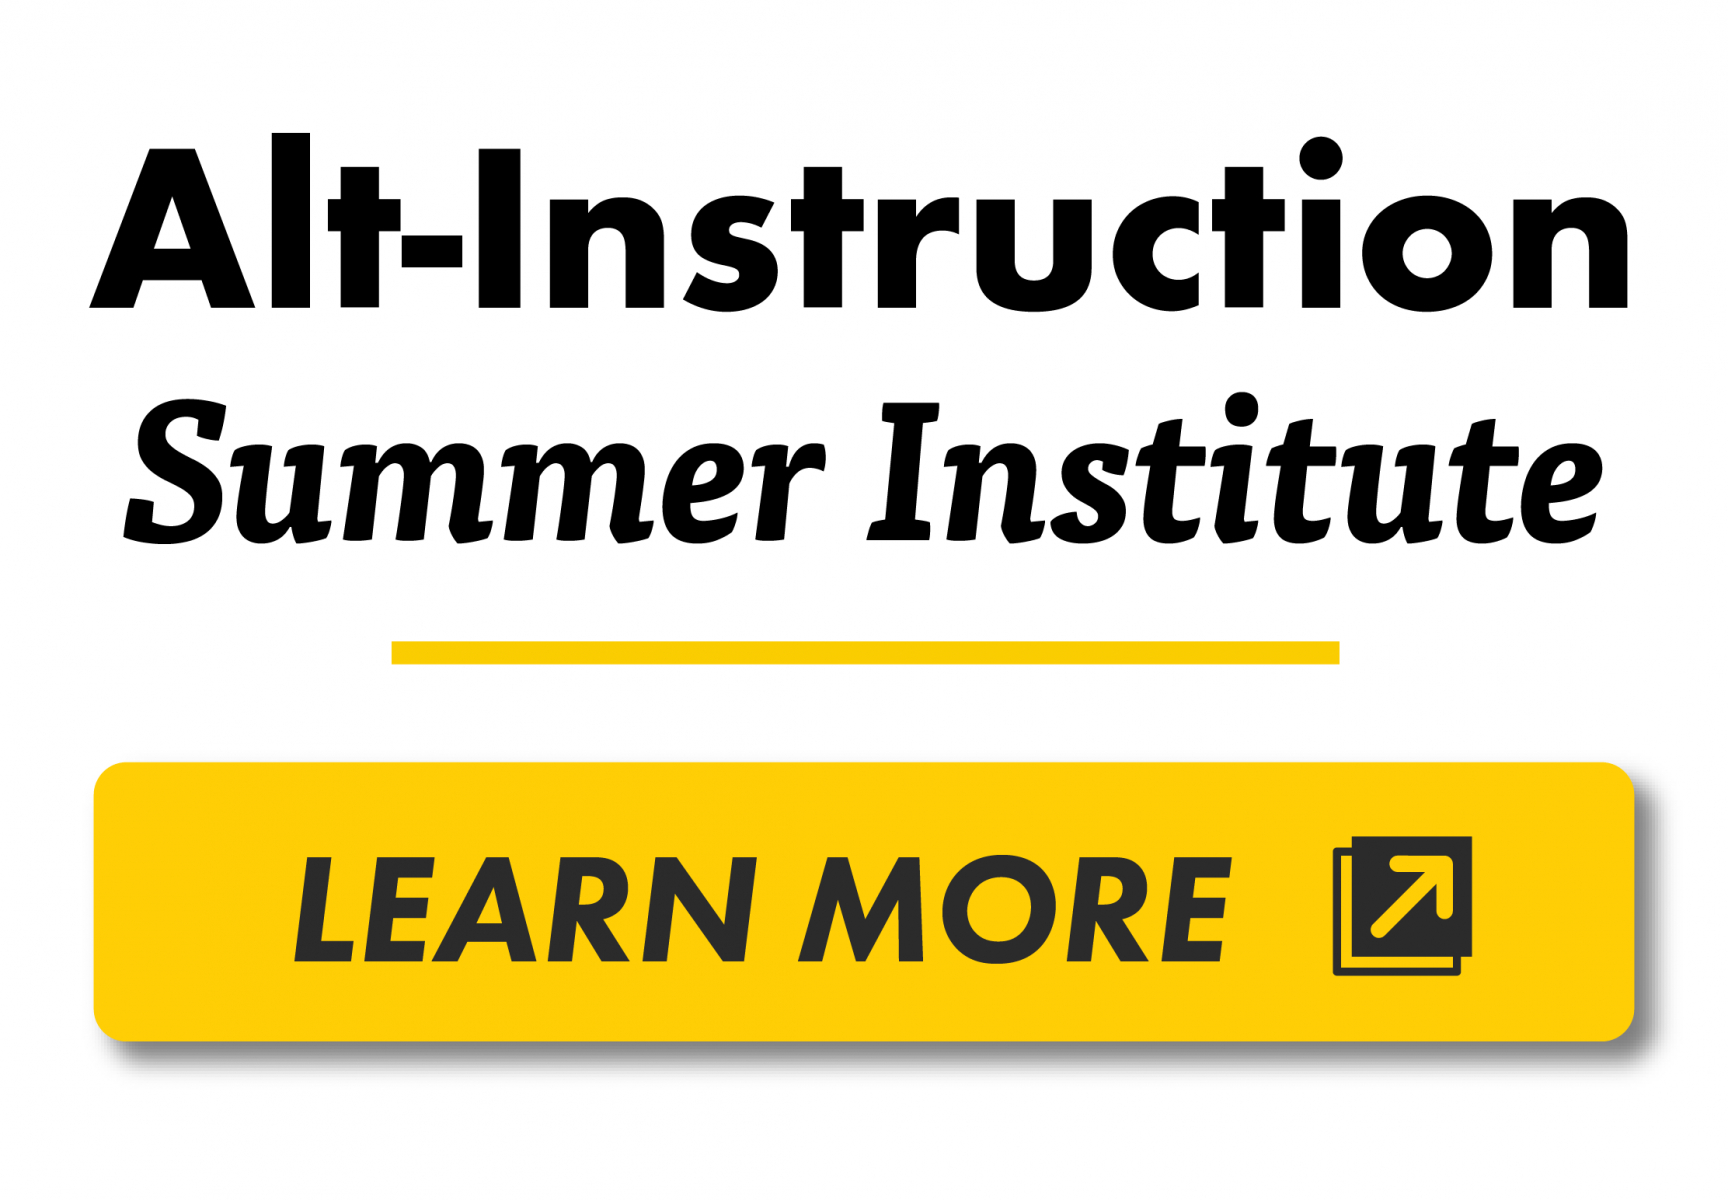 Alt-Instruction Summer Institute